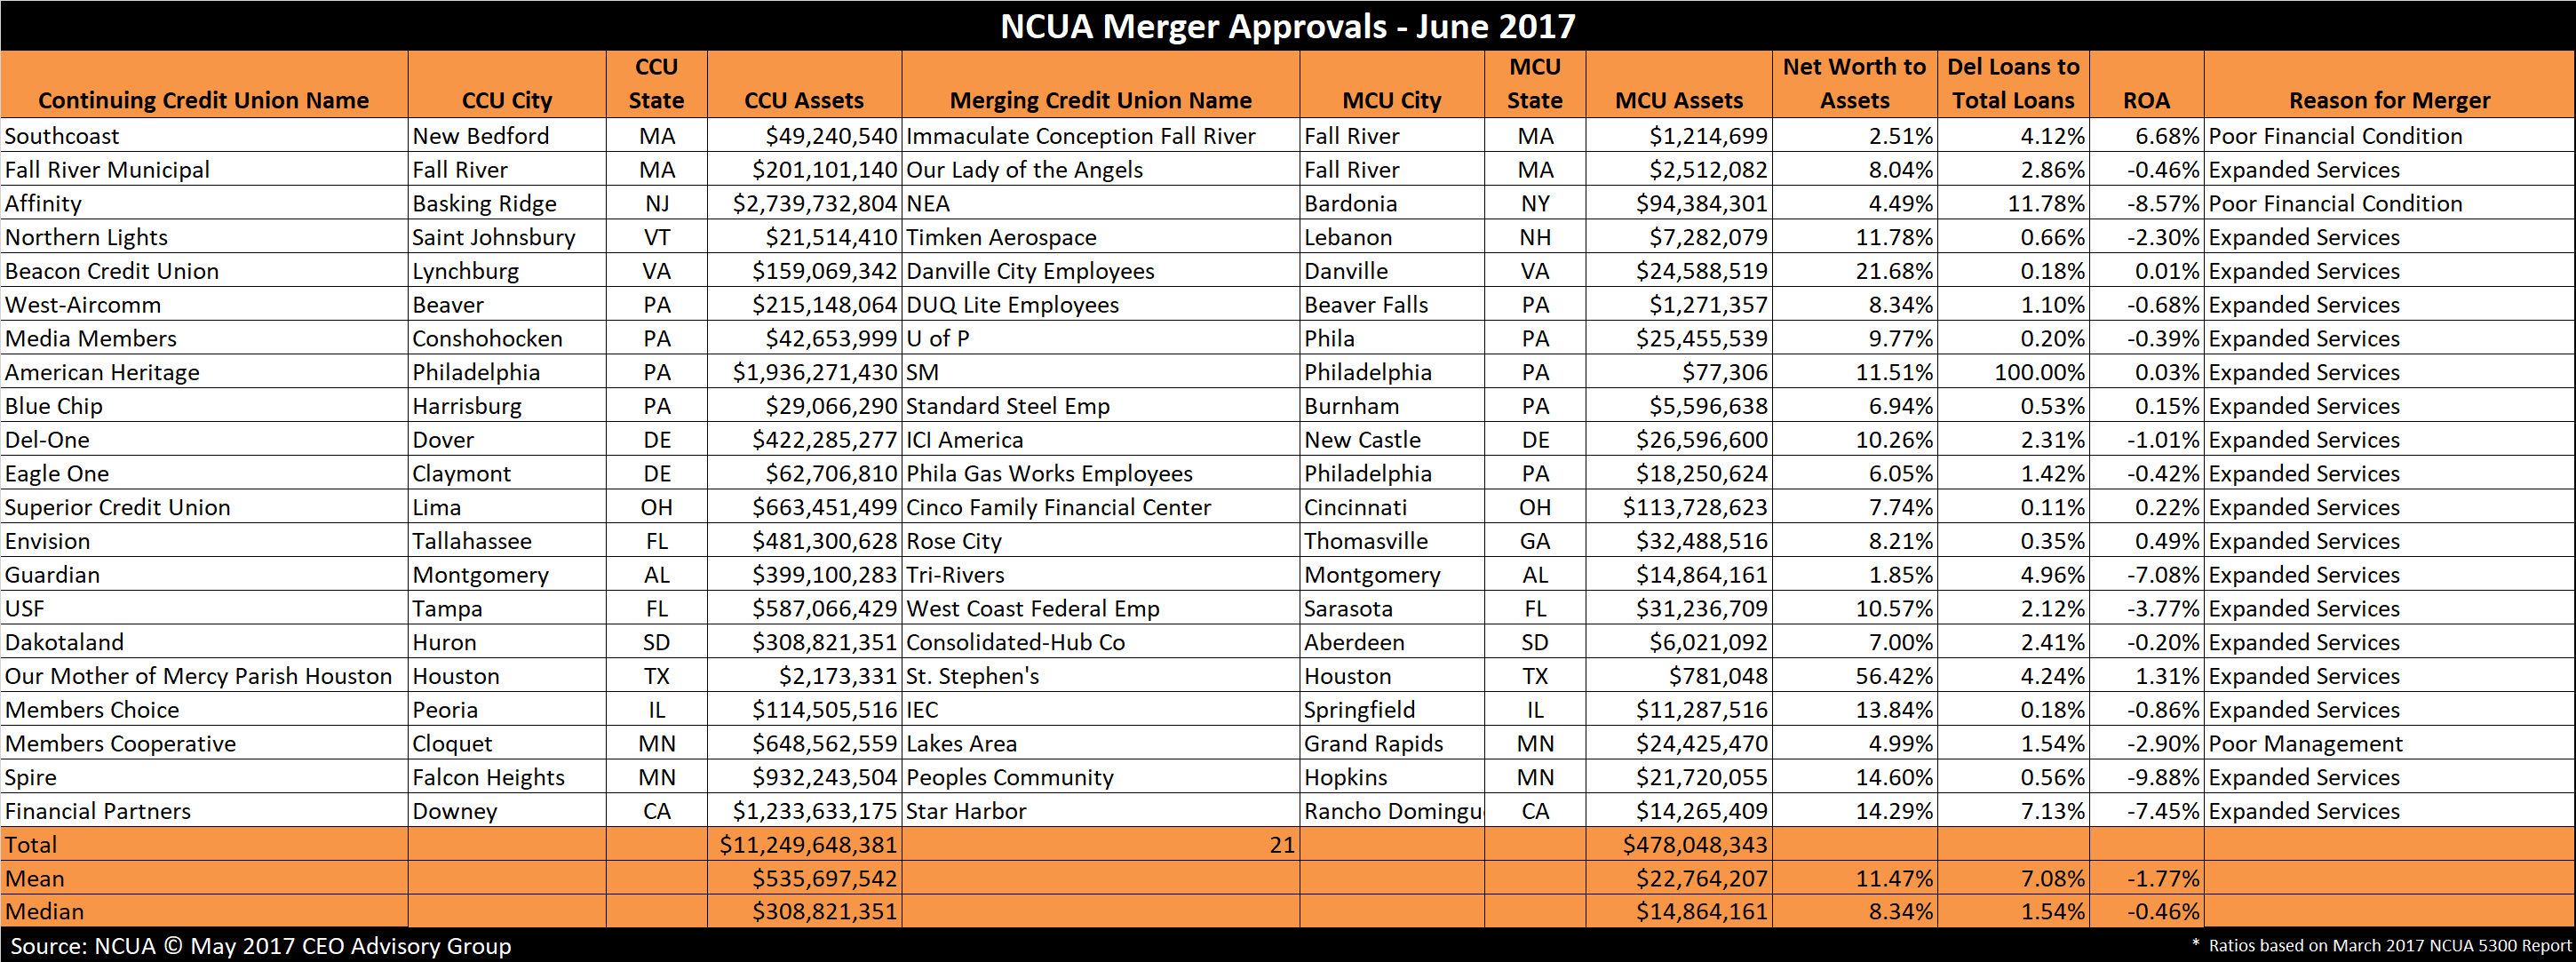 Credit Union Merger Approvals - June 2017